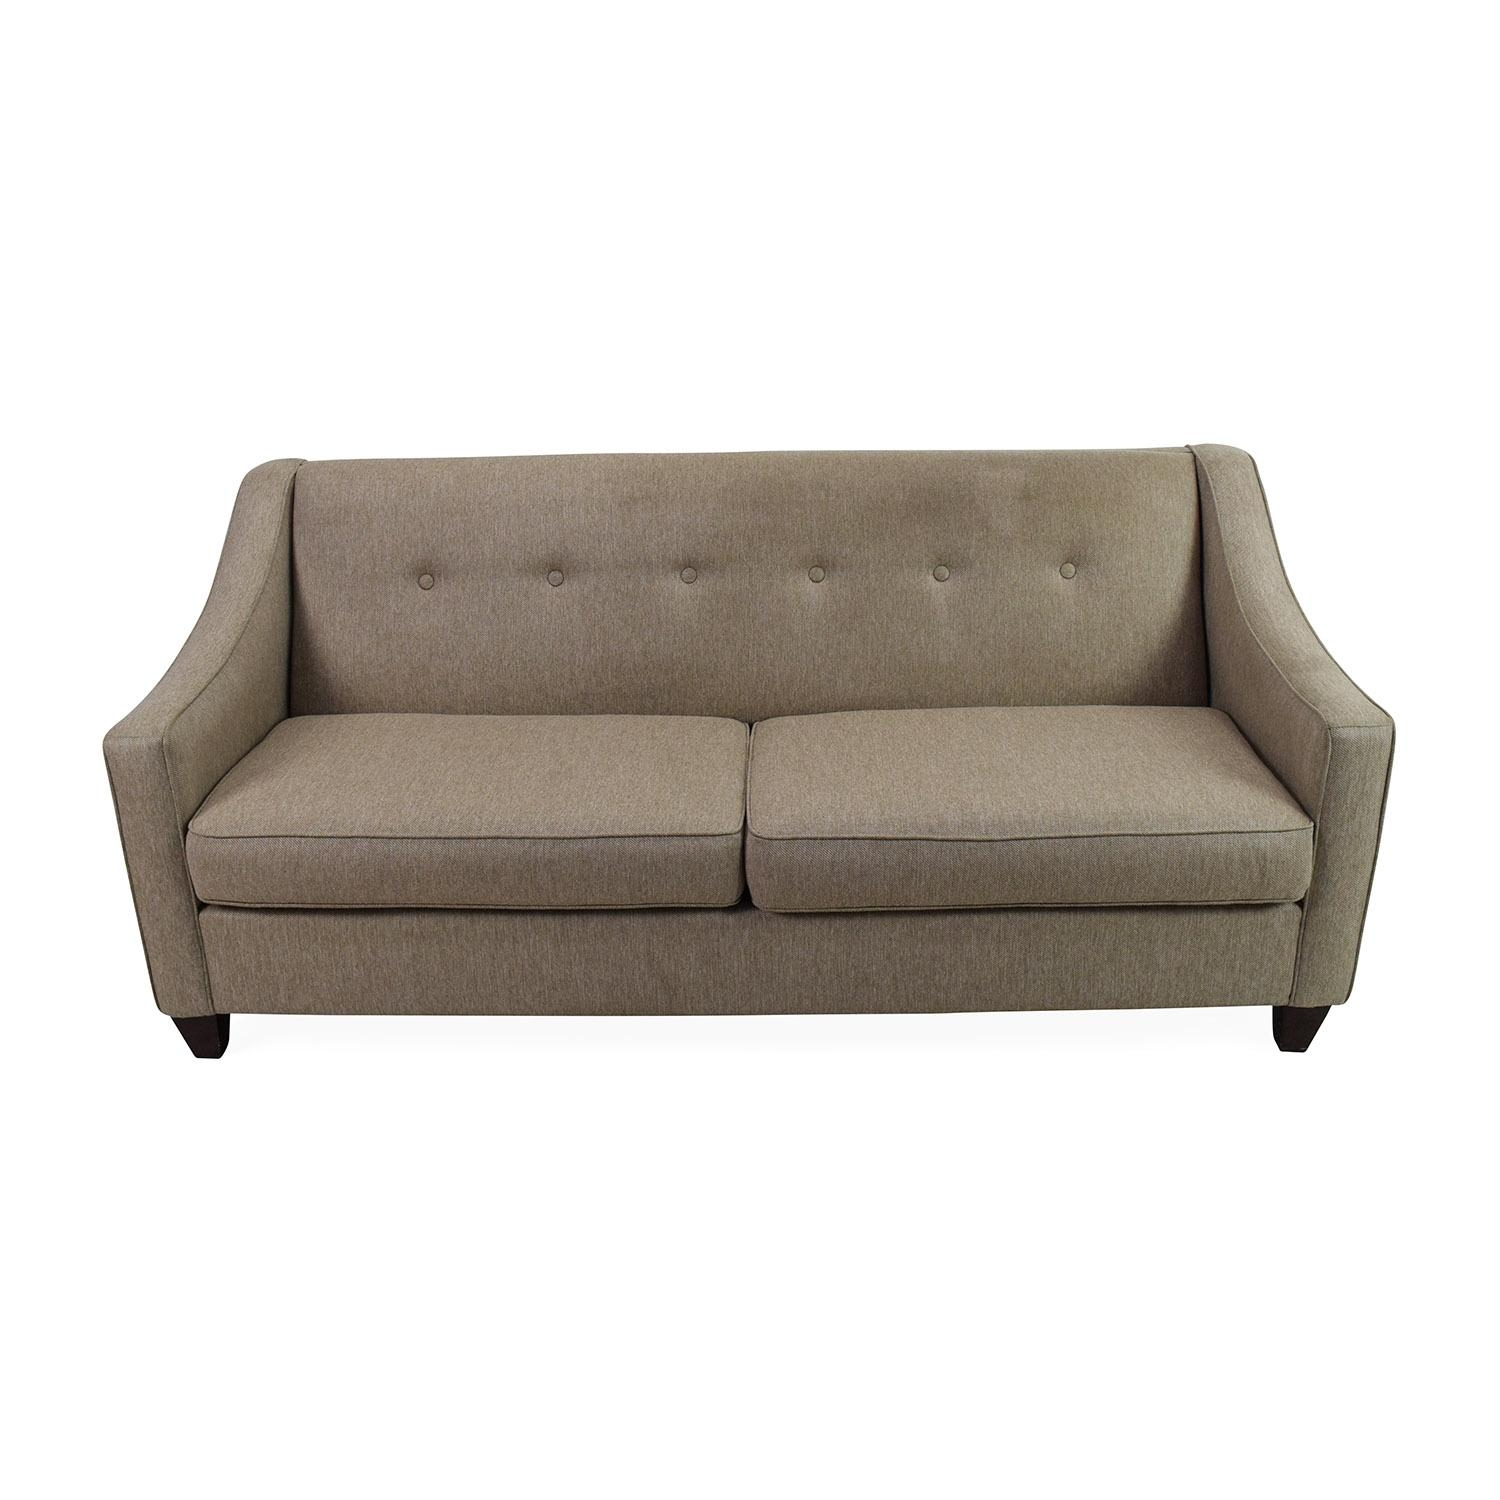 81% Off - Raymour And Flanigan Raymour & Flanigan Ashton Sofa / Sofas regarding Ashton Sofas